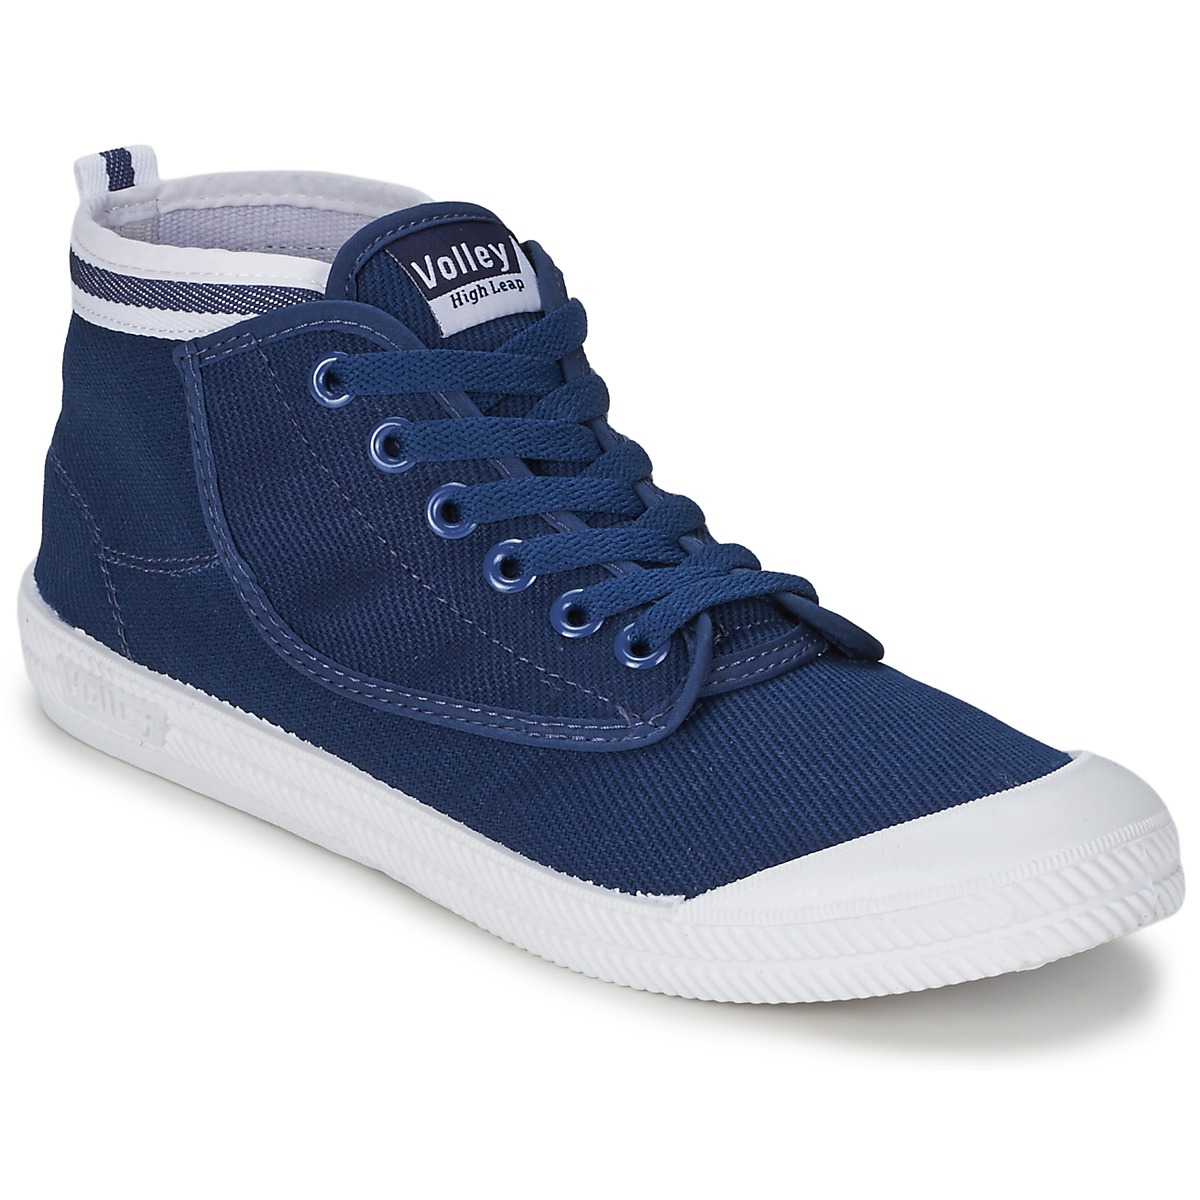 Volley HIGH LEAP Navy / Weiss